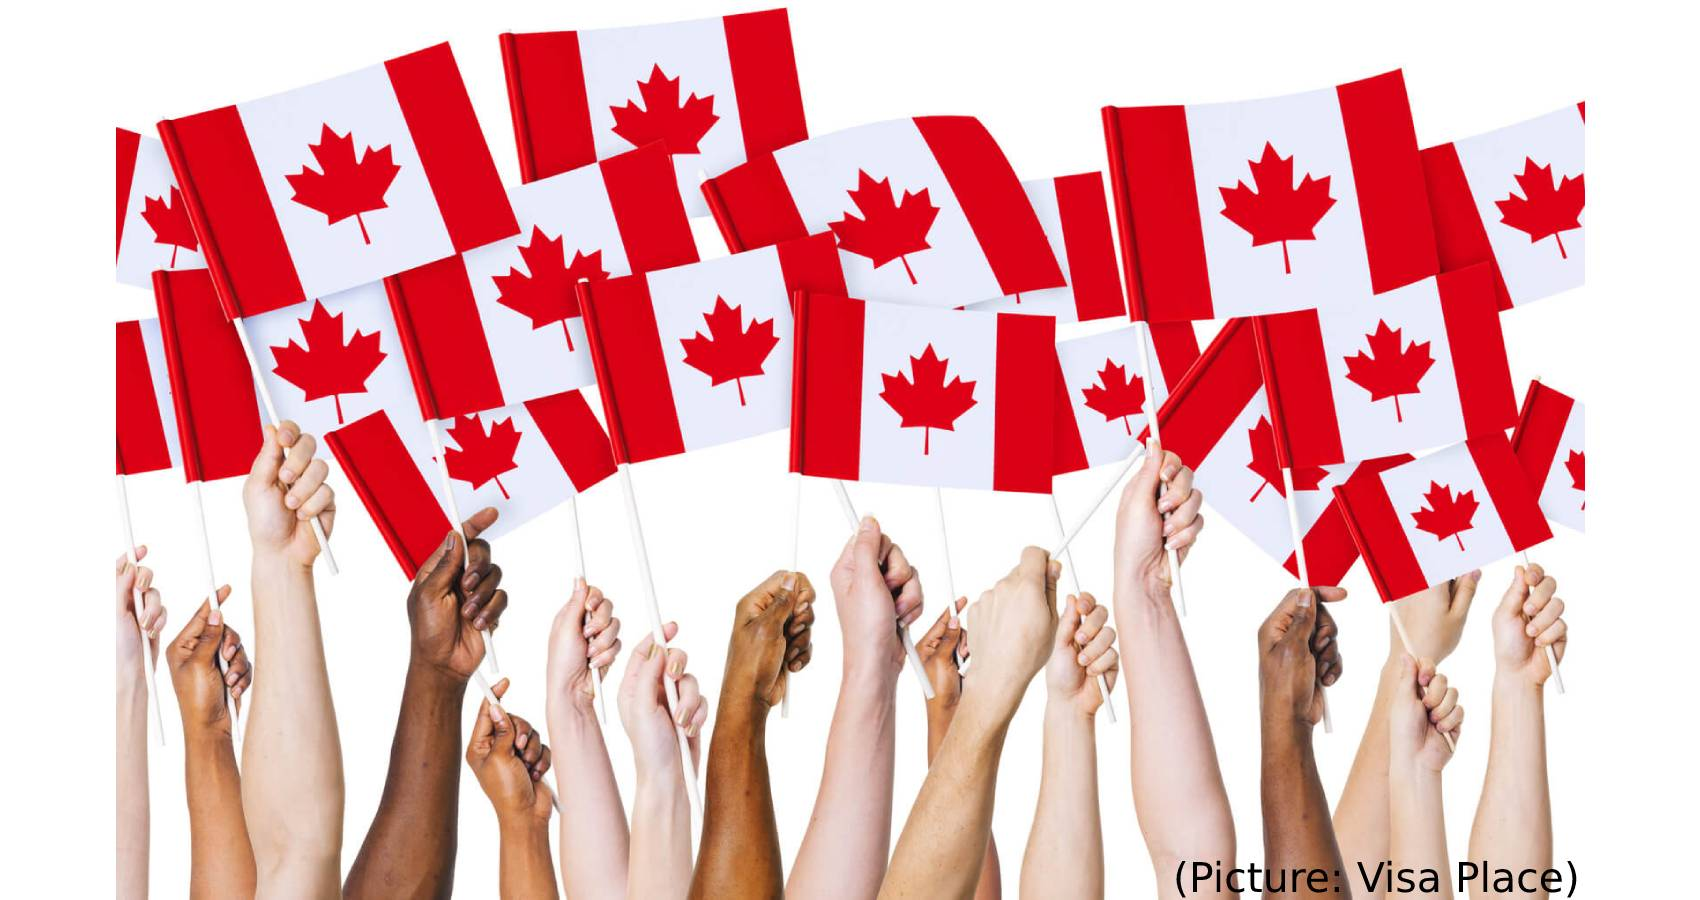 Canada's Family Reunification Program To Benefit Indians